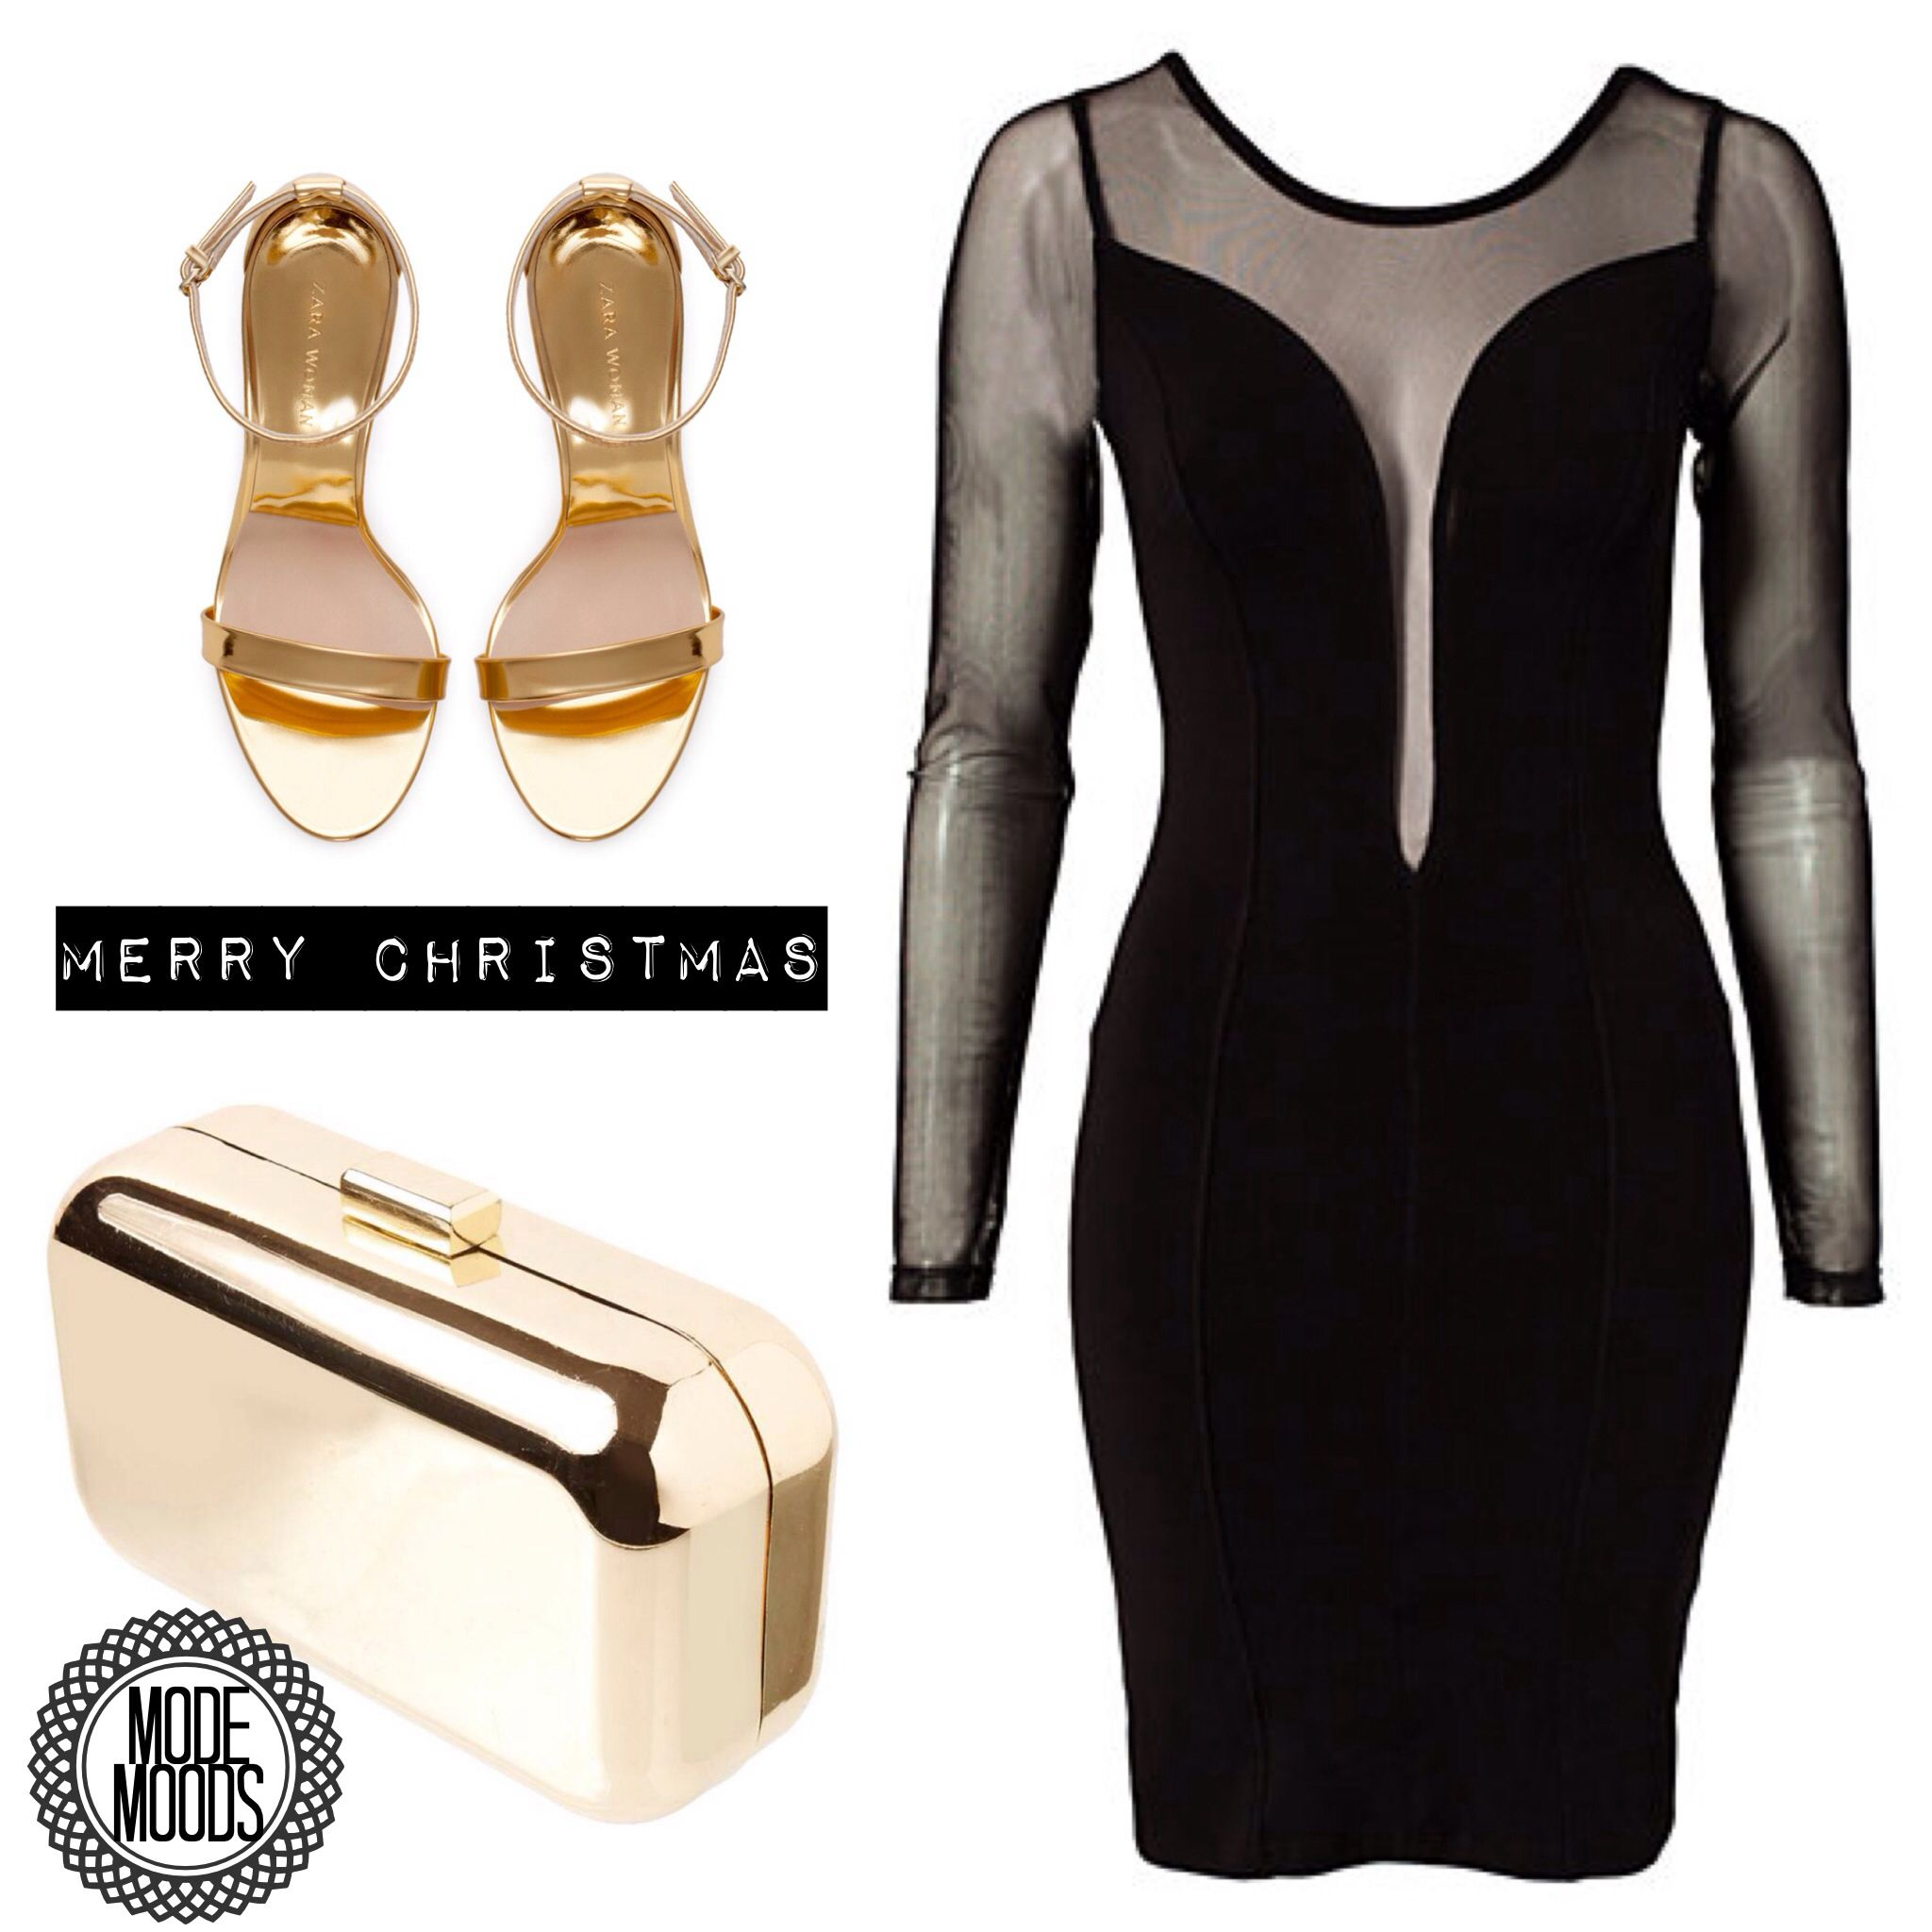 Merry #ModeMoods! #Christmaslook #kerstoutfit #fashion #mode #partydress